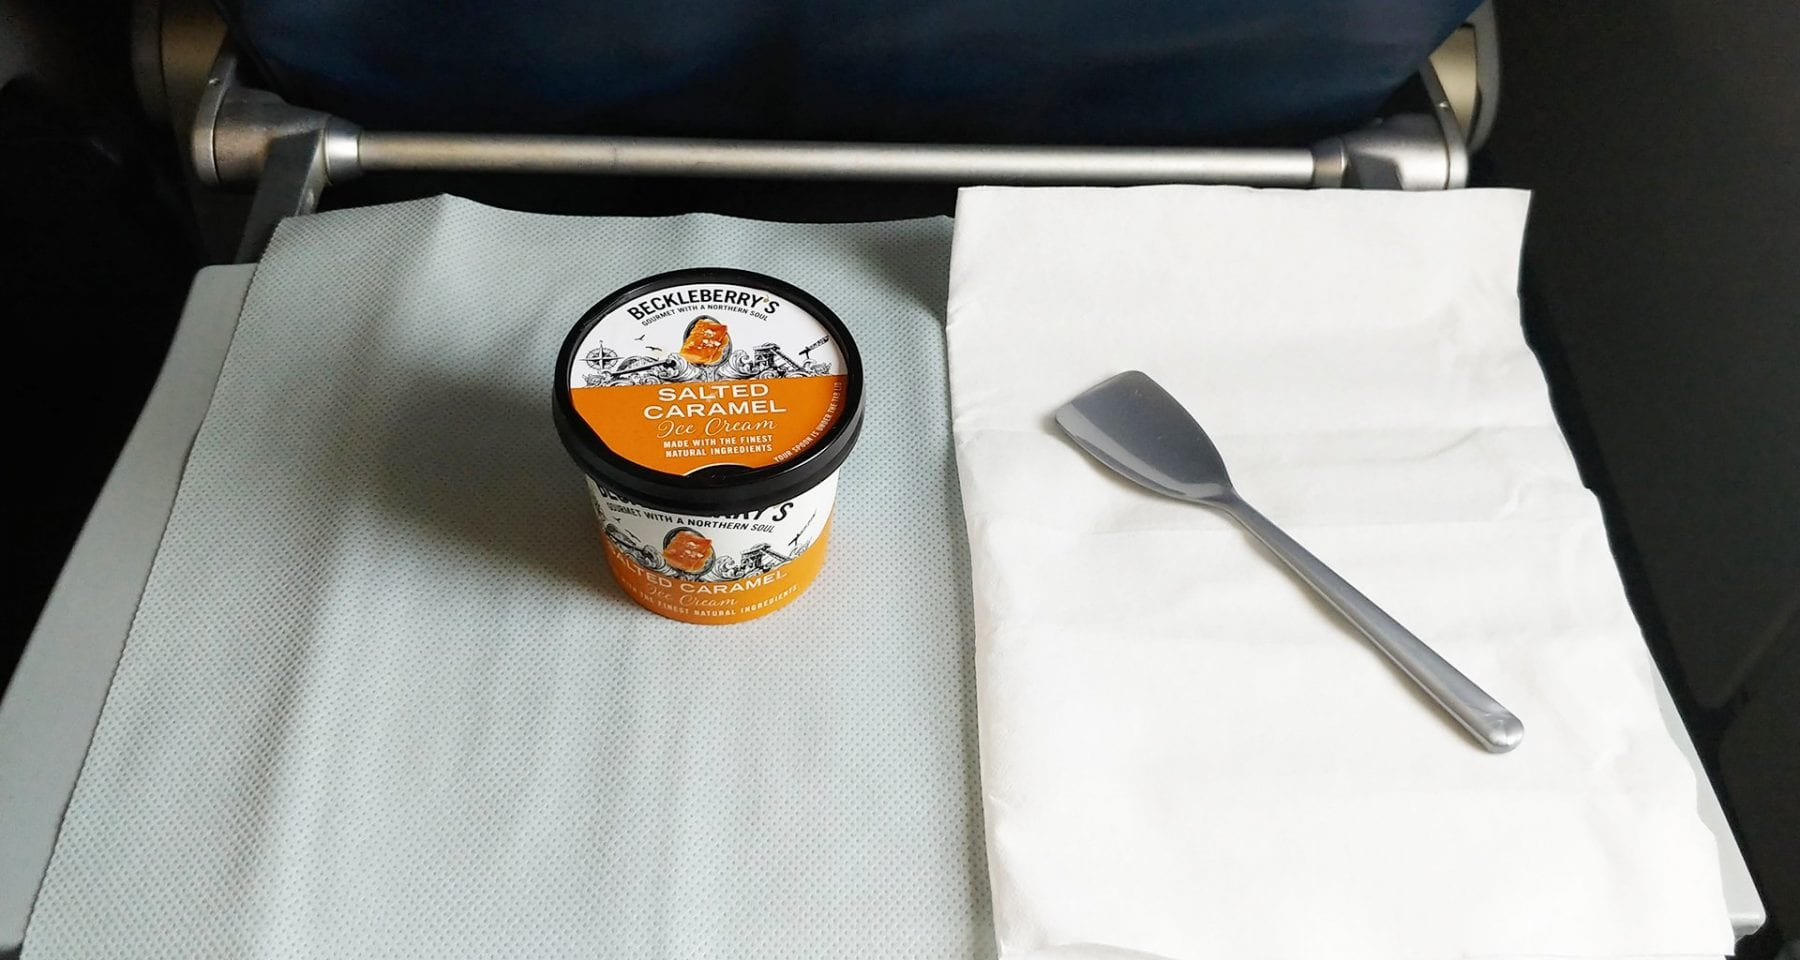 Delta main cabin dessert ice cream